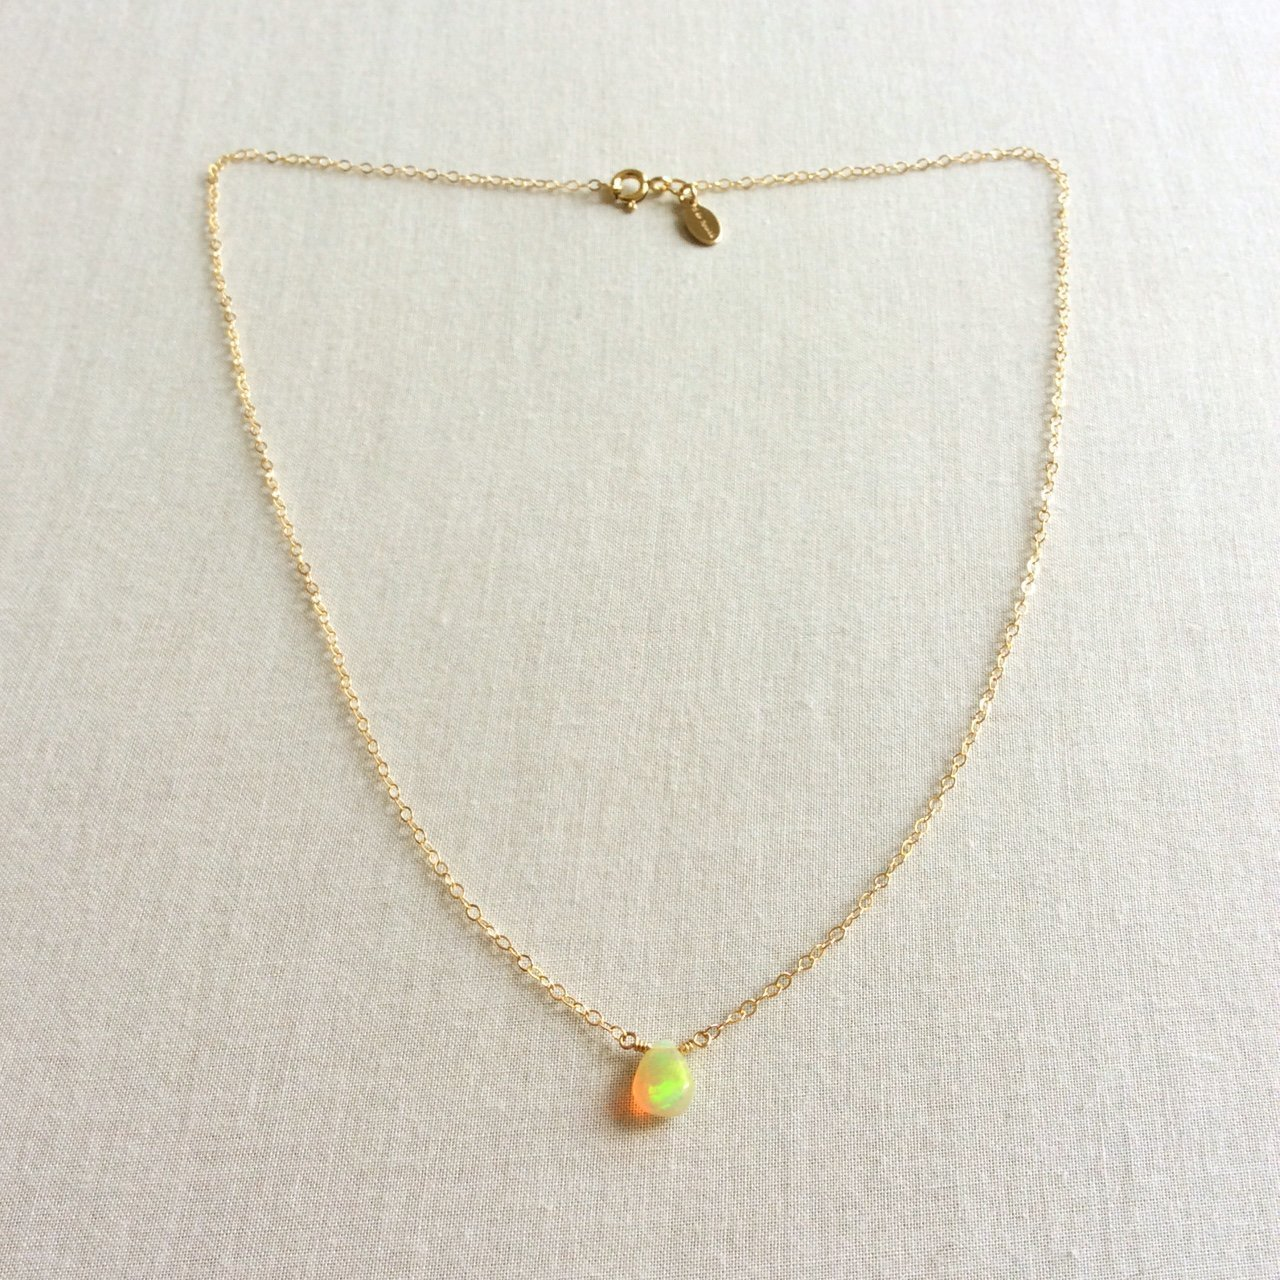 8 carats Genuine Fire Opal on SOLID 14K gold  16 inch necklace